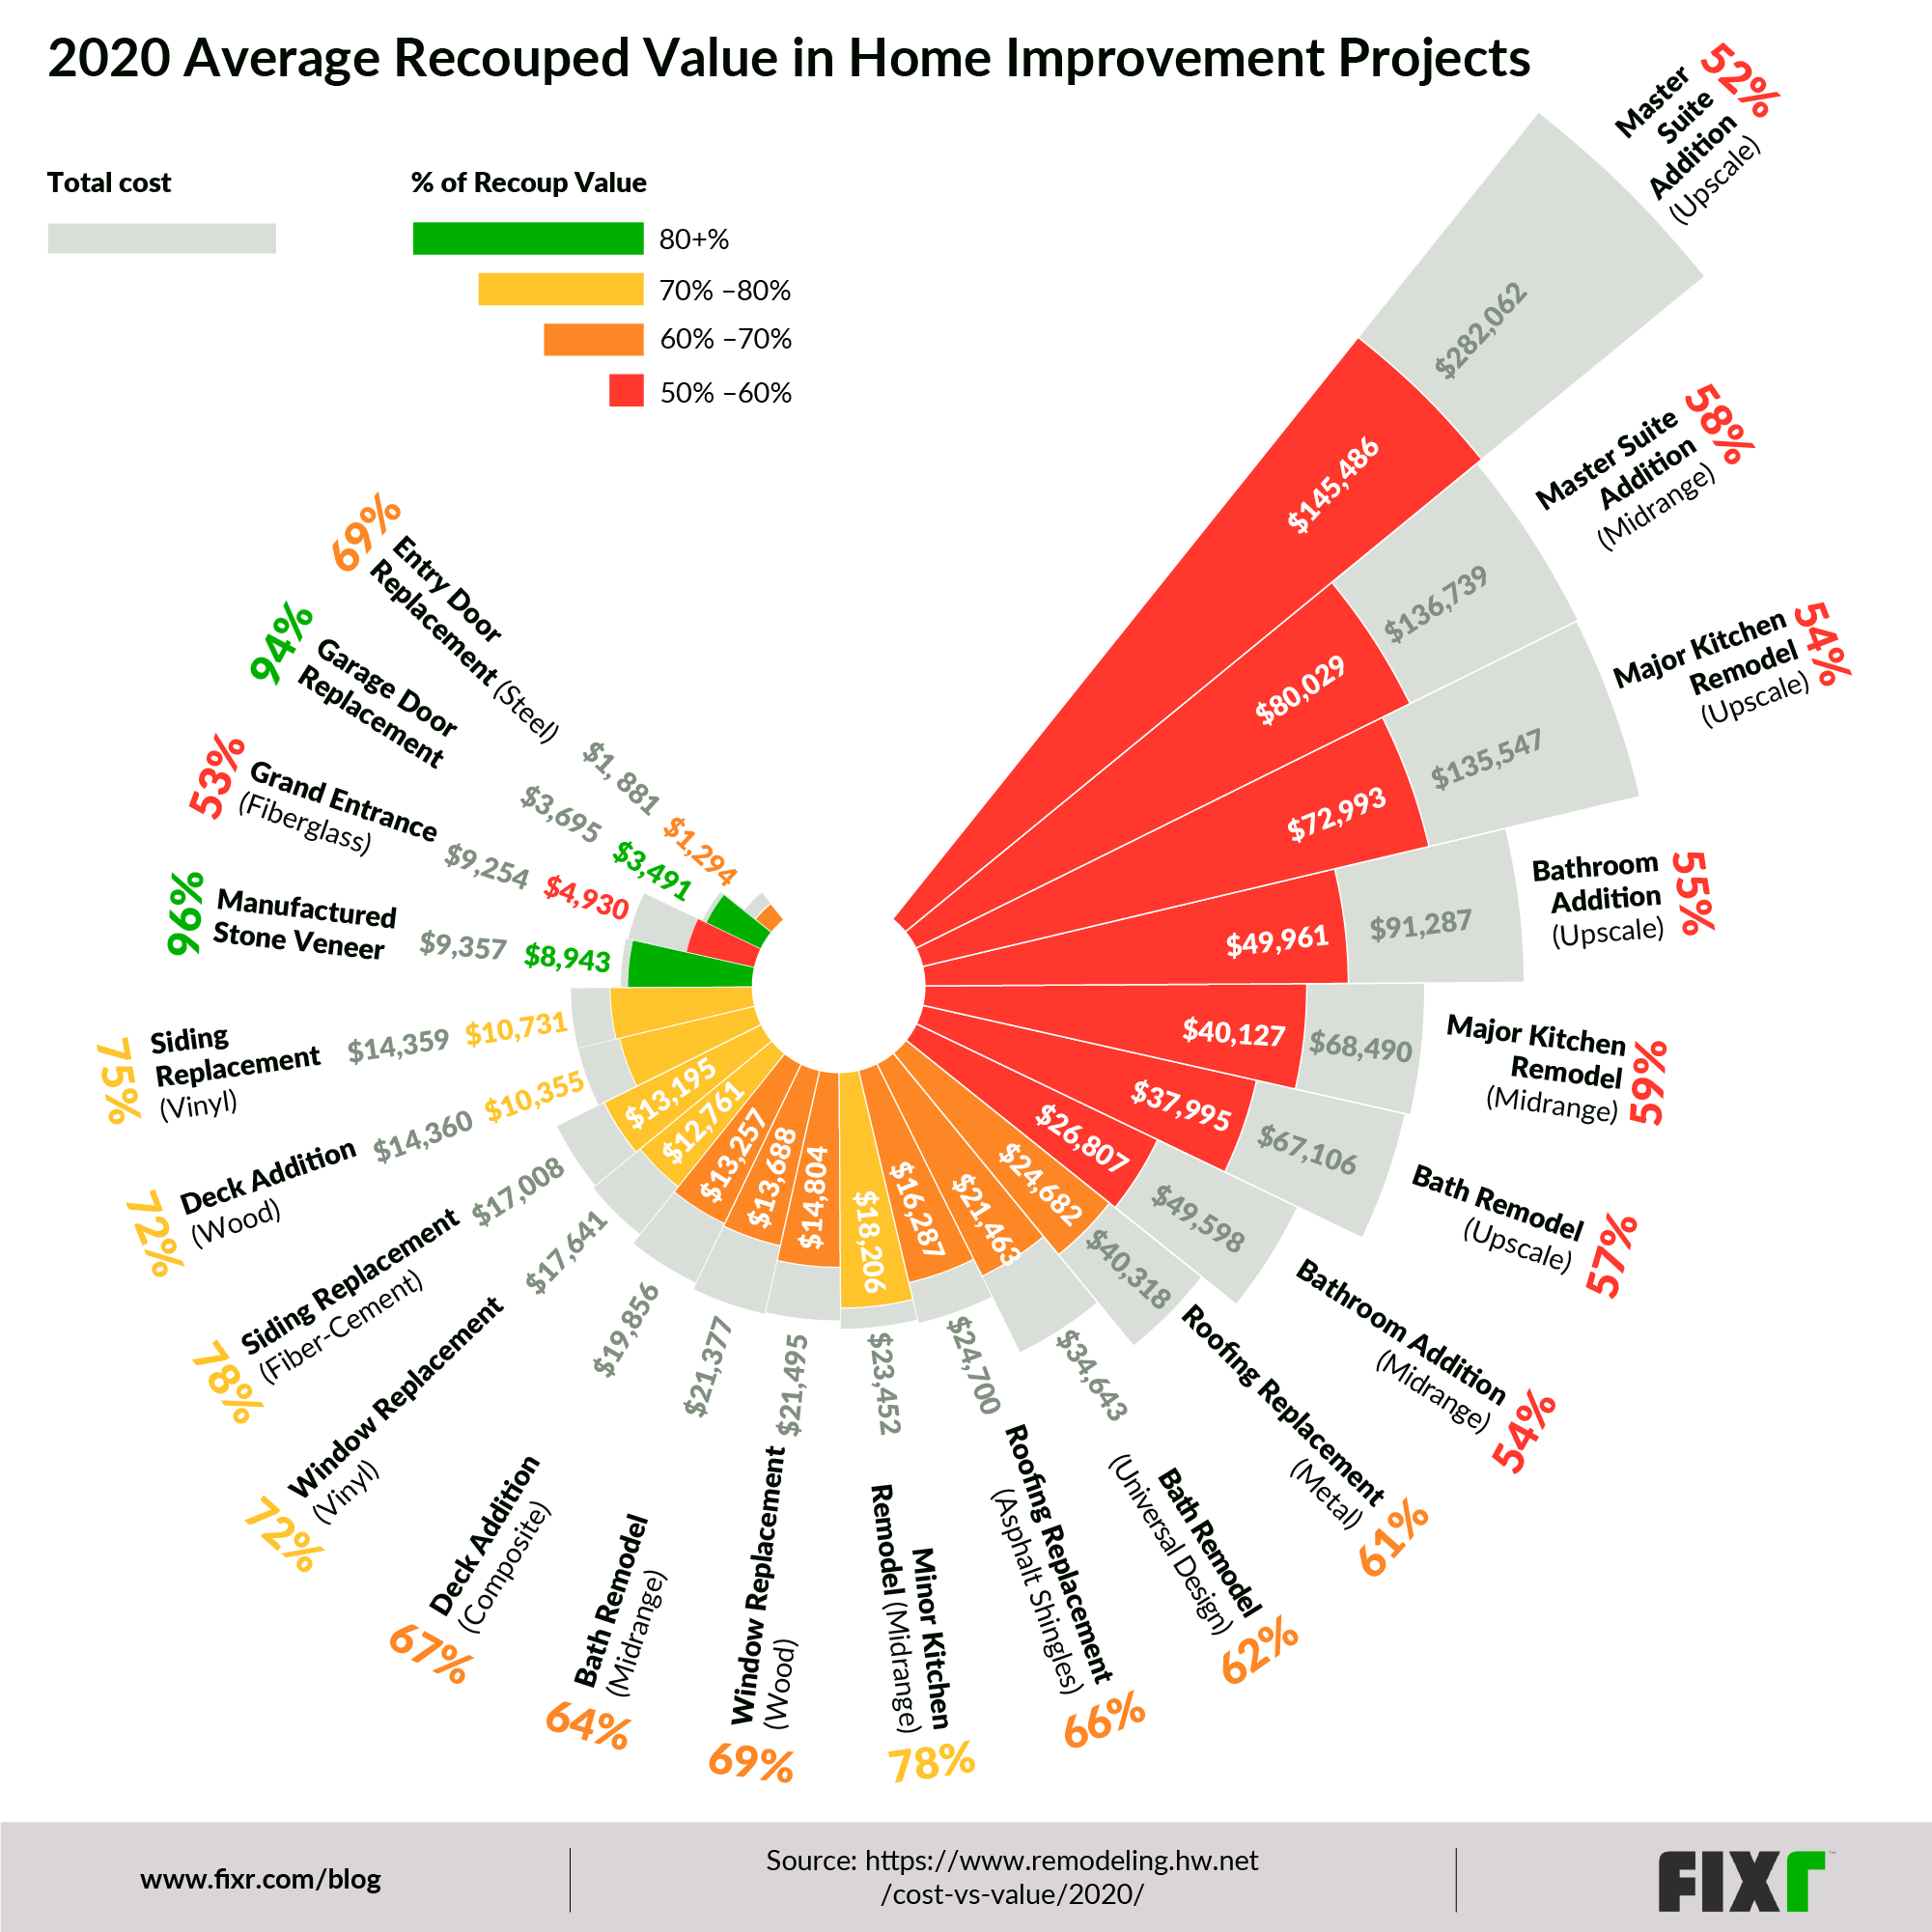 2020 average recouped value in home improvement projects